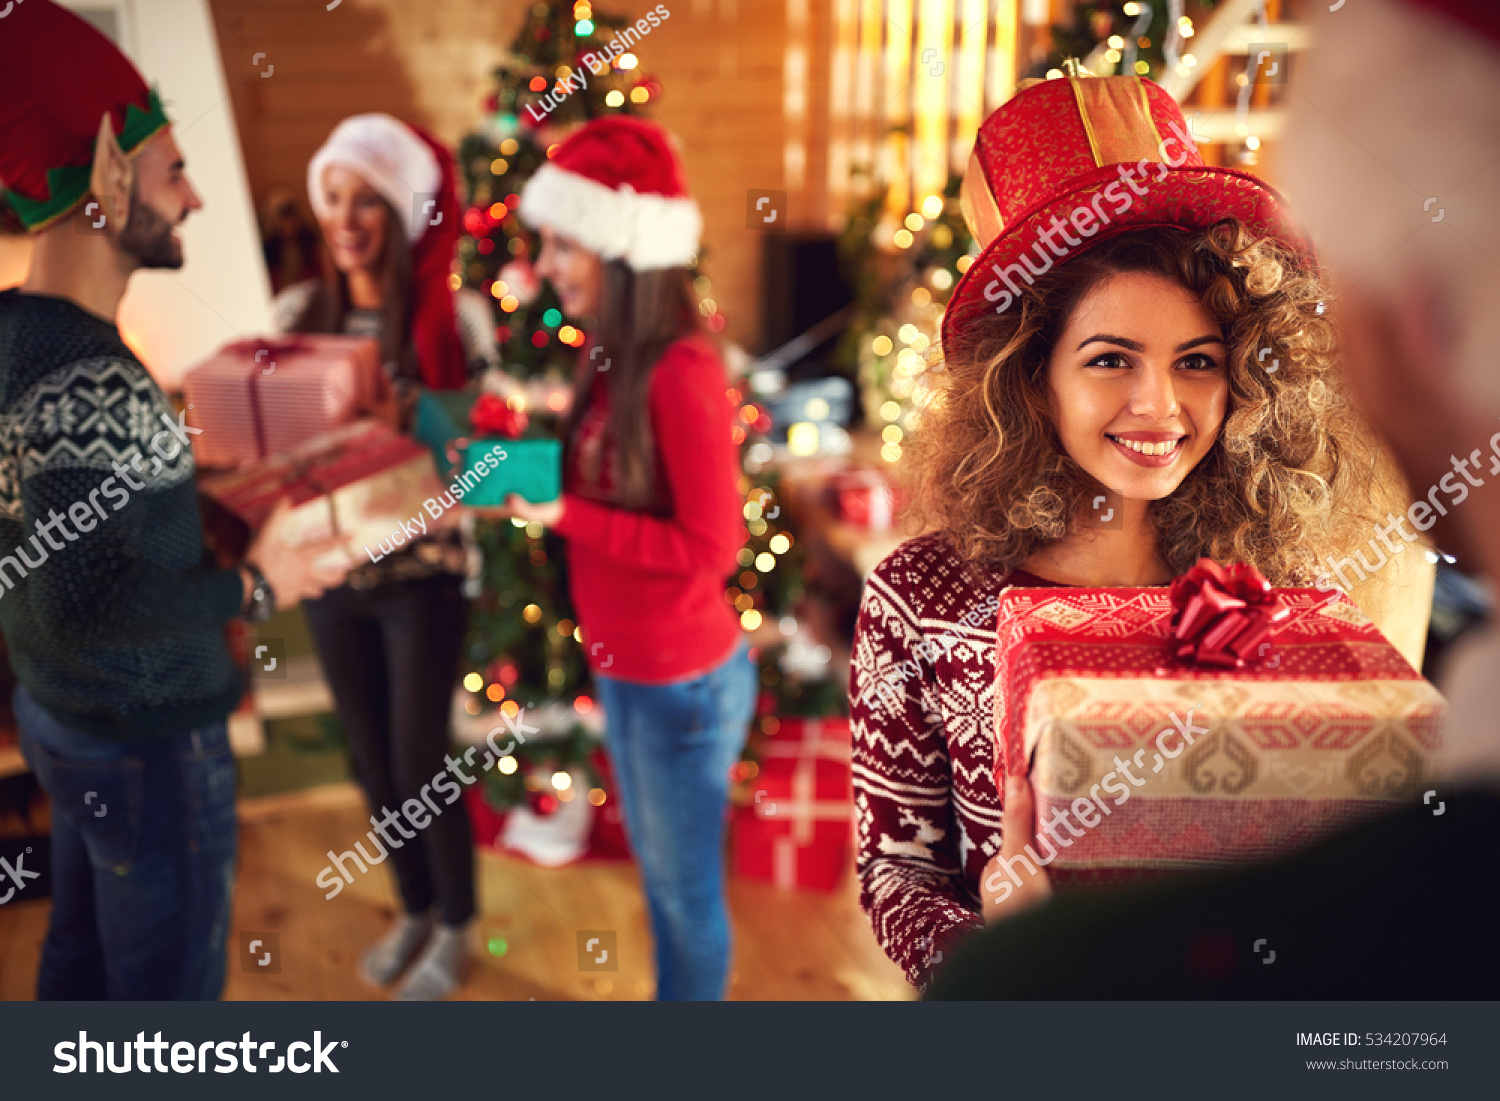 Friends giving gifts christmas stock photo 534207964 shutterstock friends giving gifts for christmas negle Choice Image